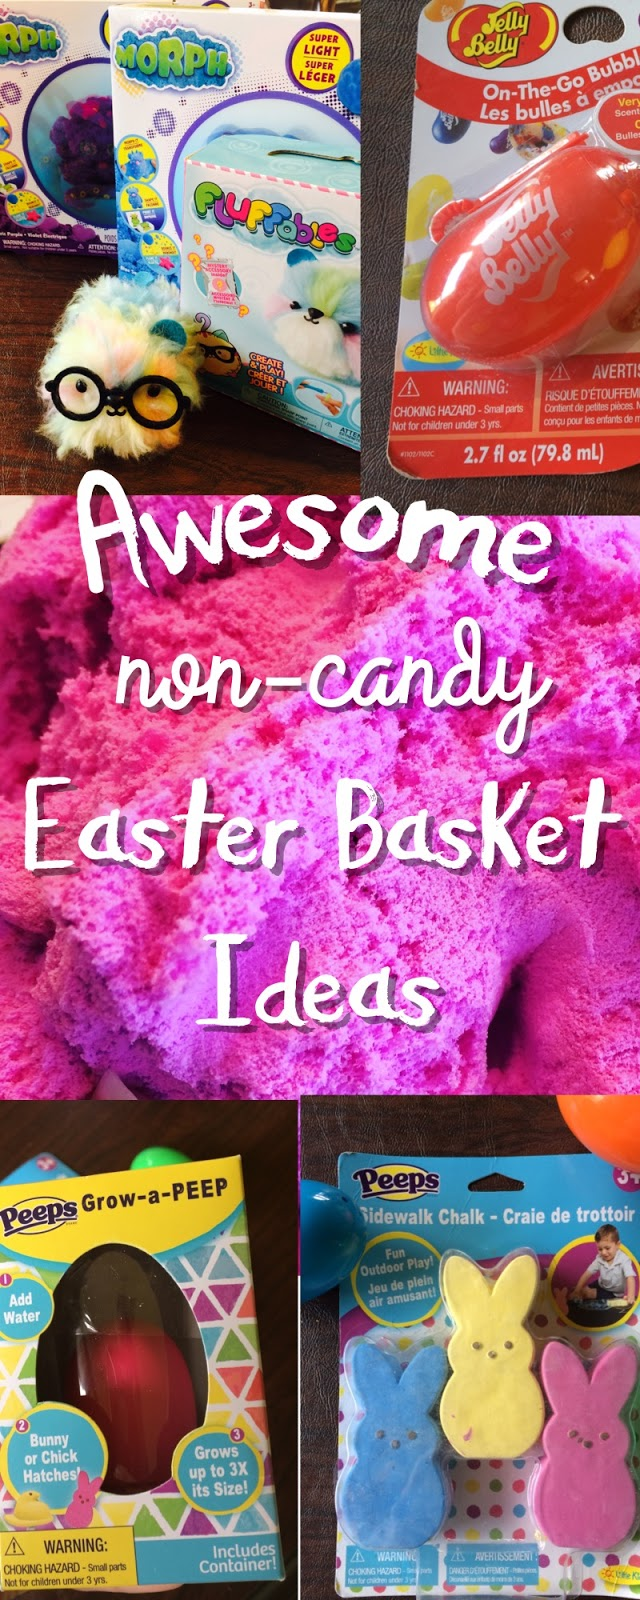 The jersey momma awesome non candy easter basket ideas are you on the hunt for easter basket items looking for some new ideas instead of candy this year i have some fun finds for you and they wont cause negle Gallery